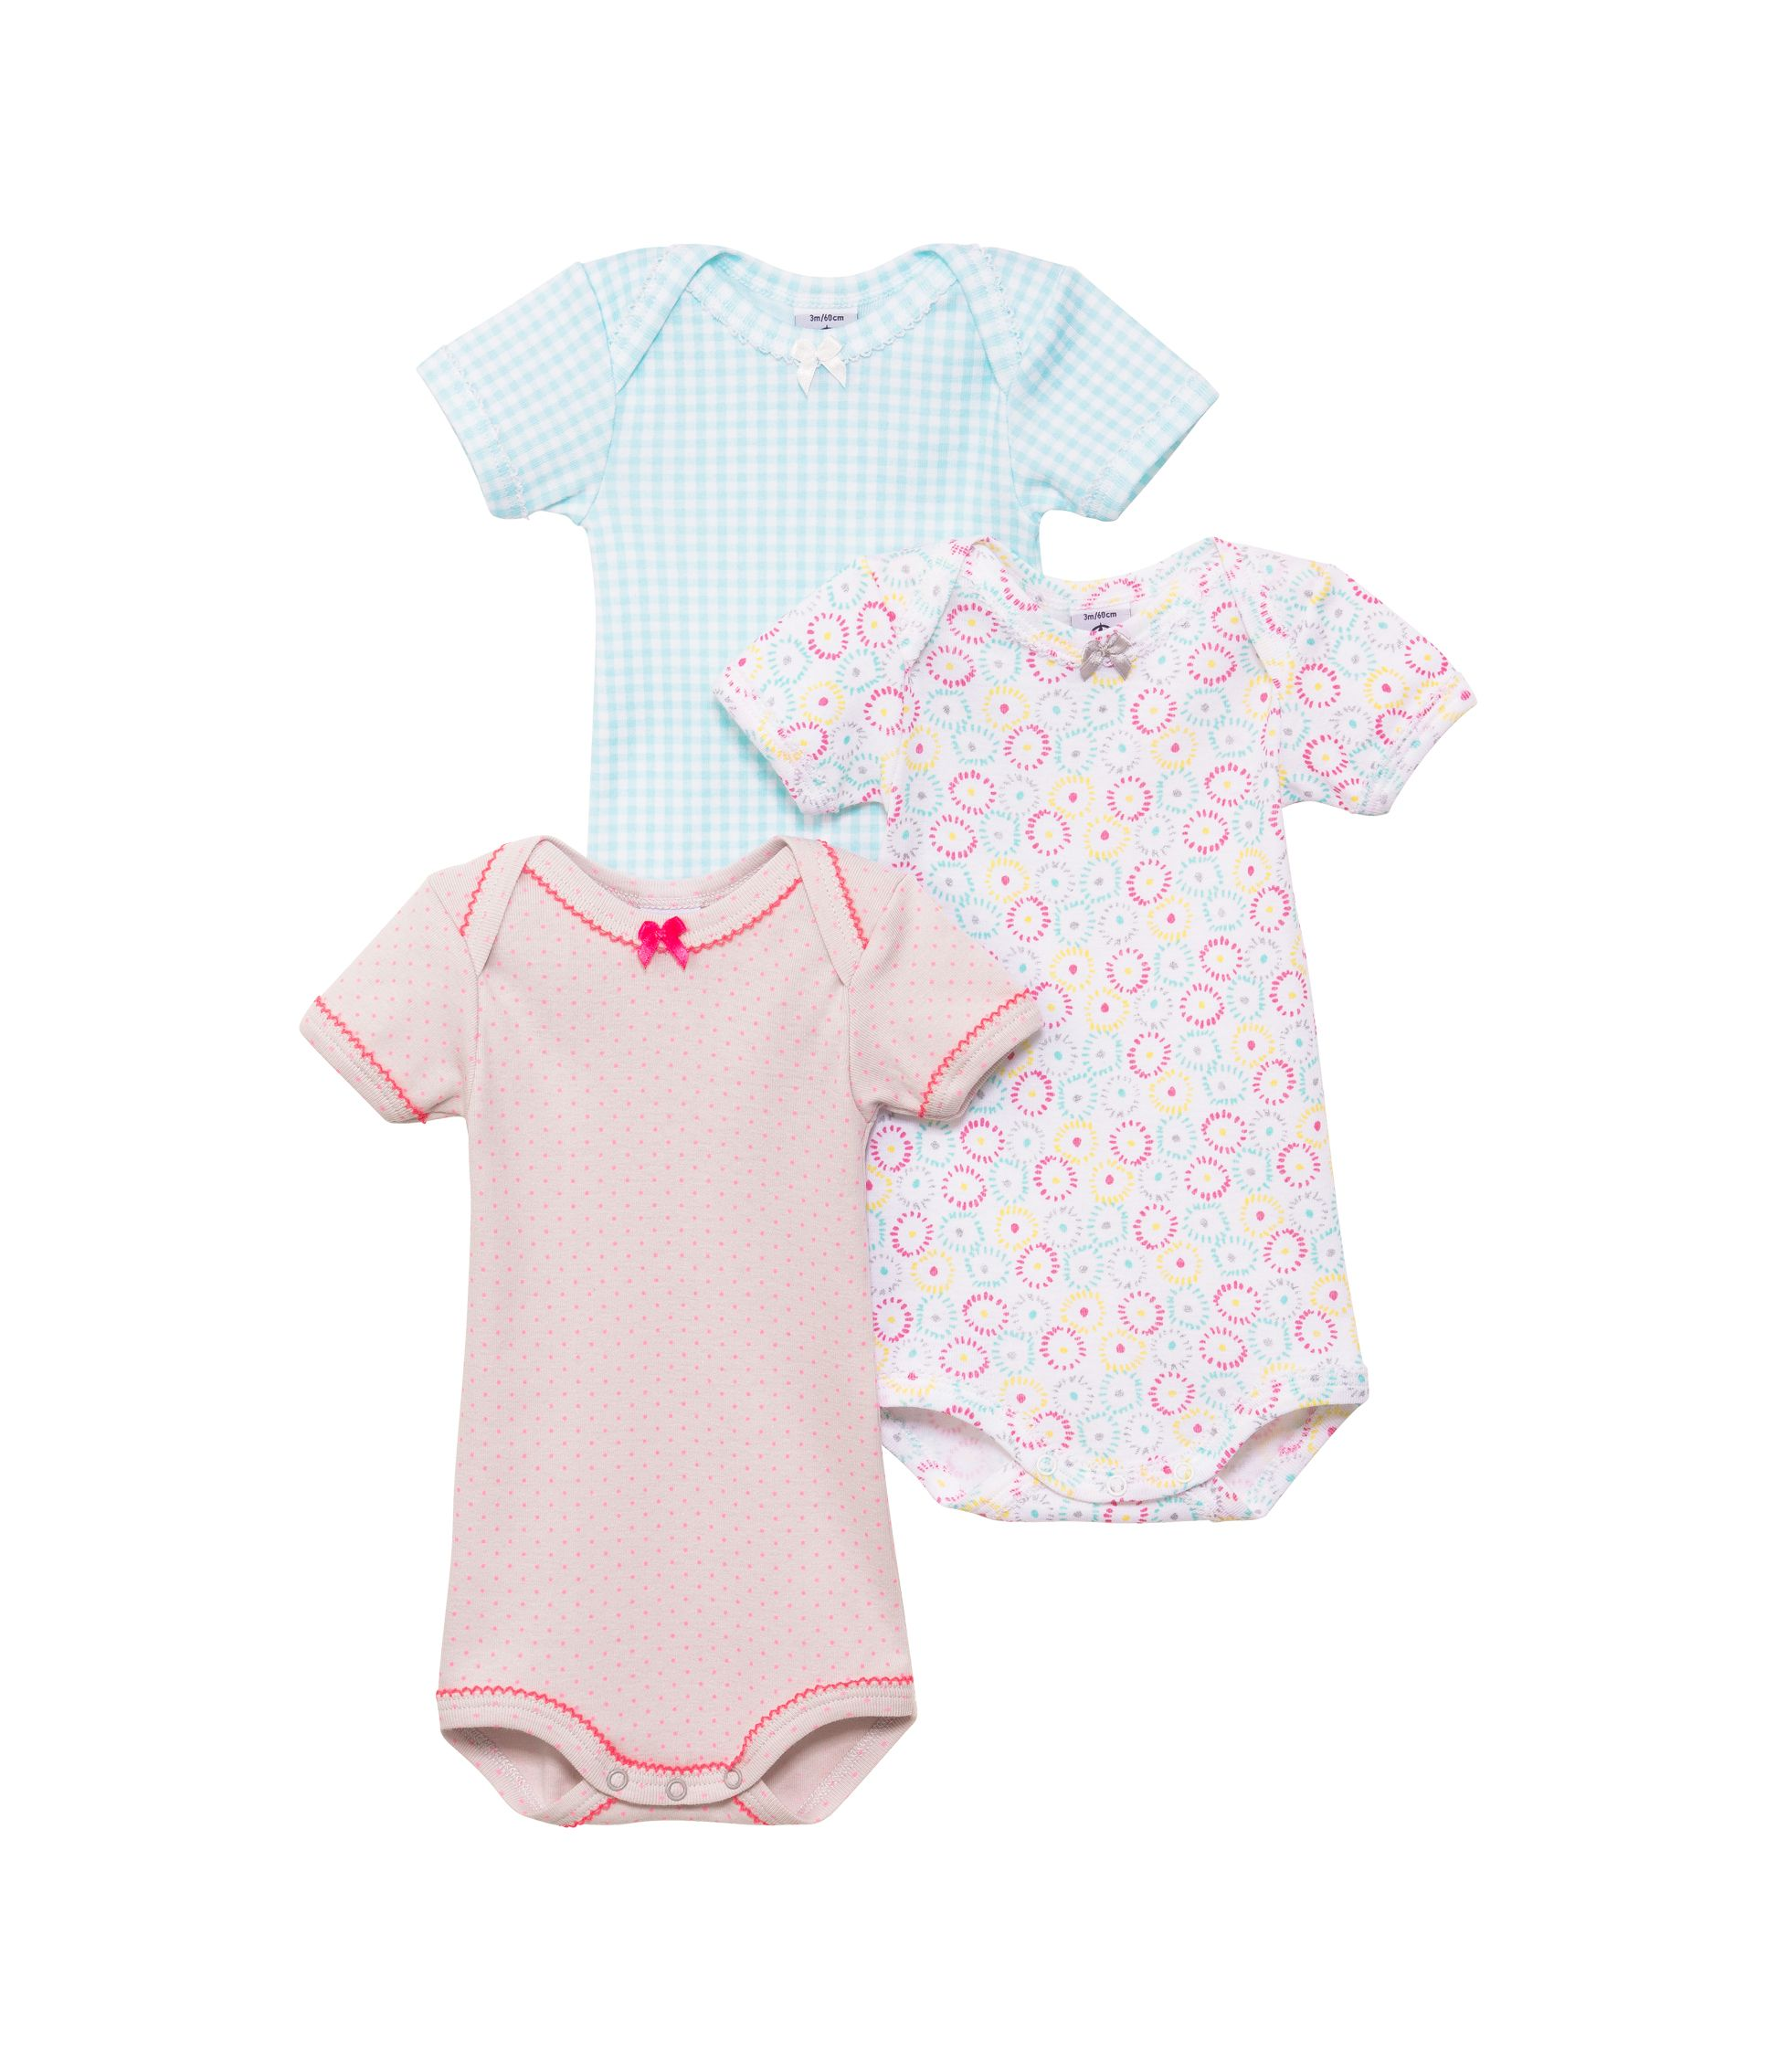 Baby girls 3 pack of bodysuits